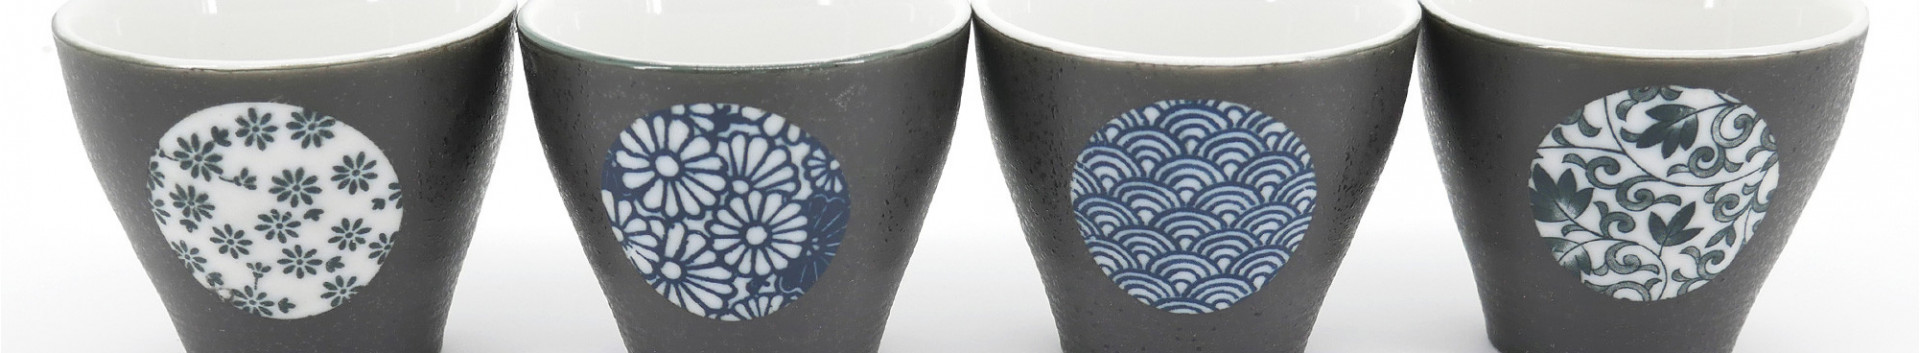 Boxes and sets of Japanese cups